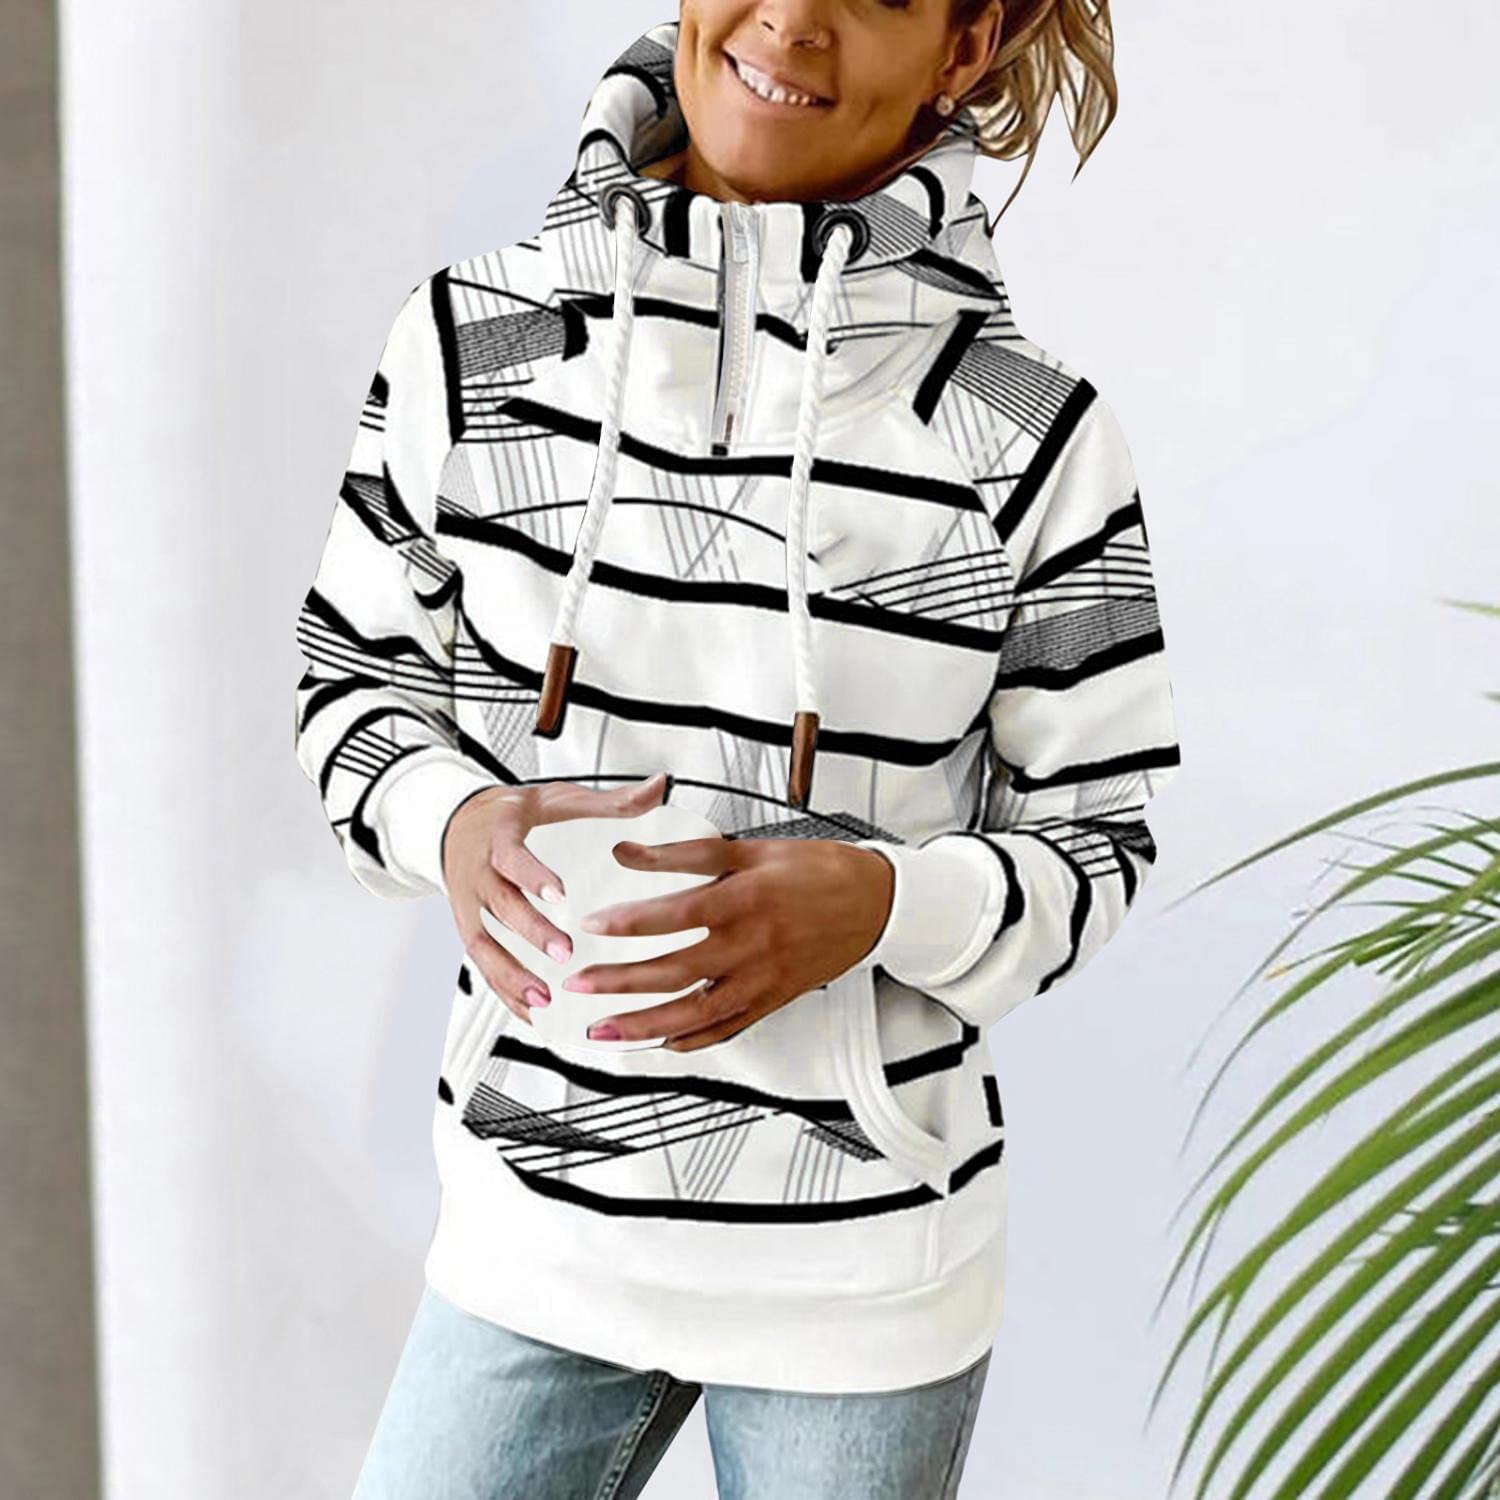 Hoodies for Women,Women's Drawstring Hooded Casual Soft Lightweight Tops Comfy Loose Blouse Pullover Pocket Sweatshirts